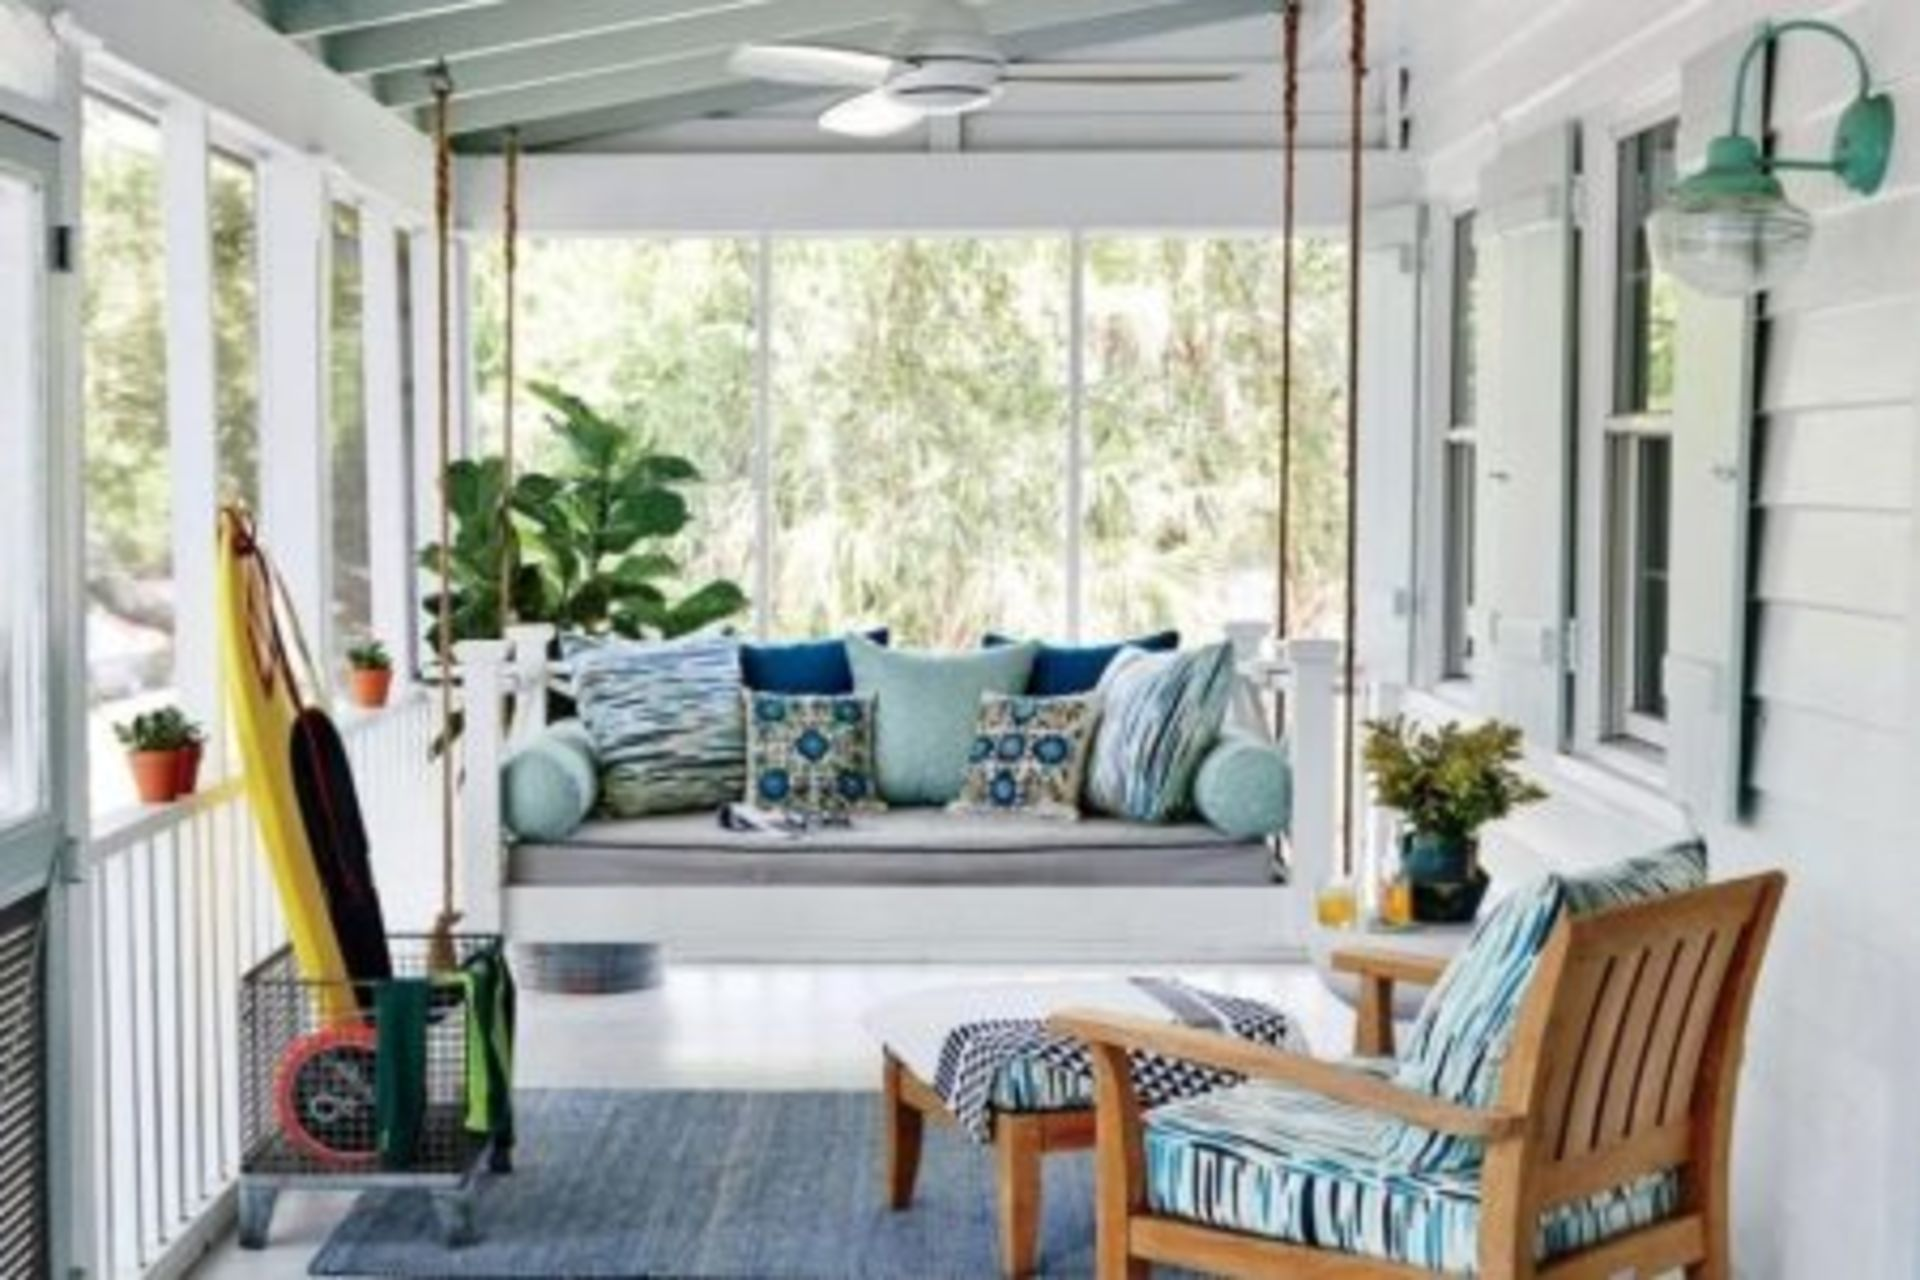 Turning Your New House by the Lake into a Tranquil Retreat